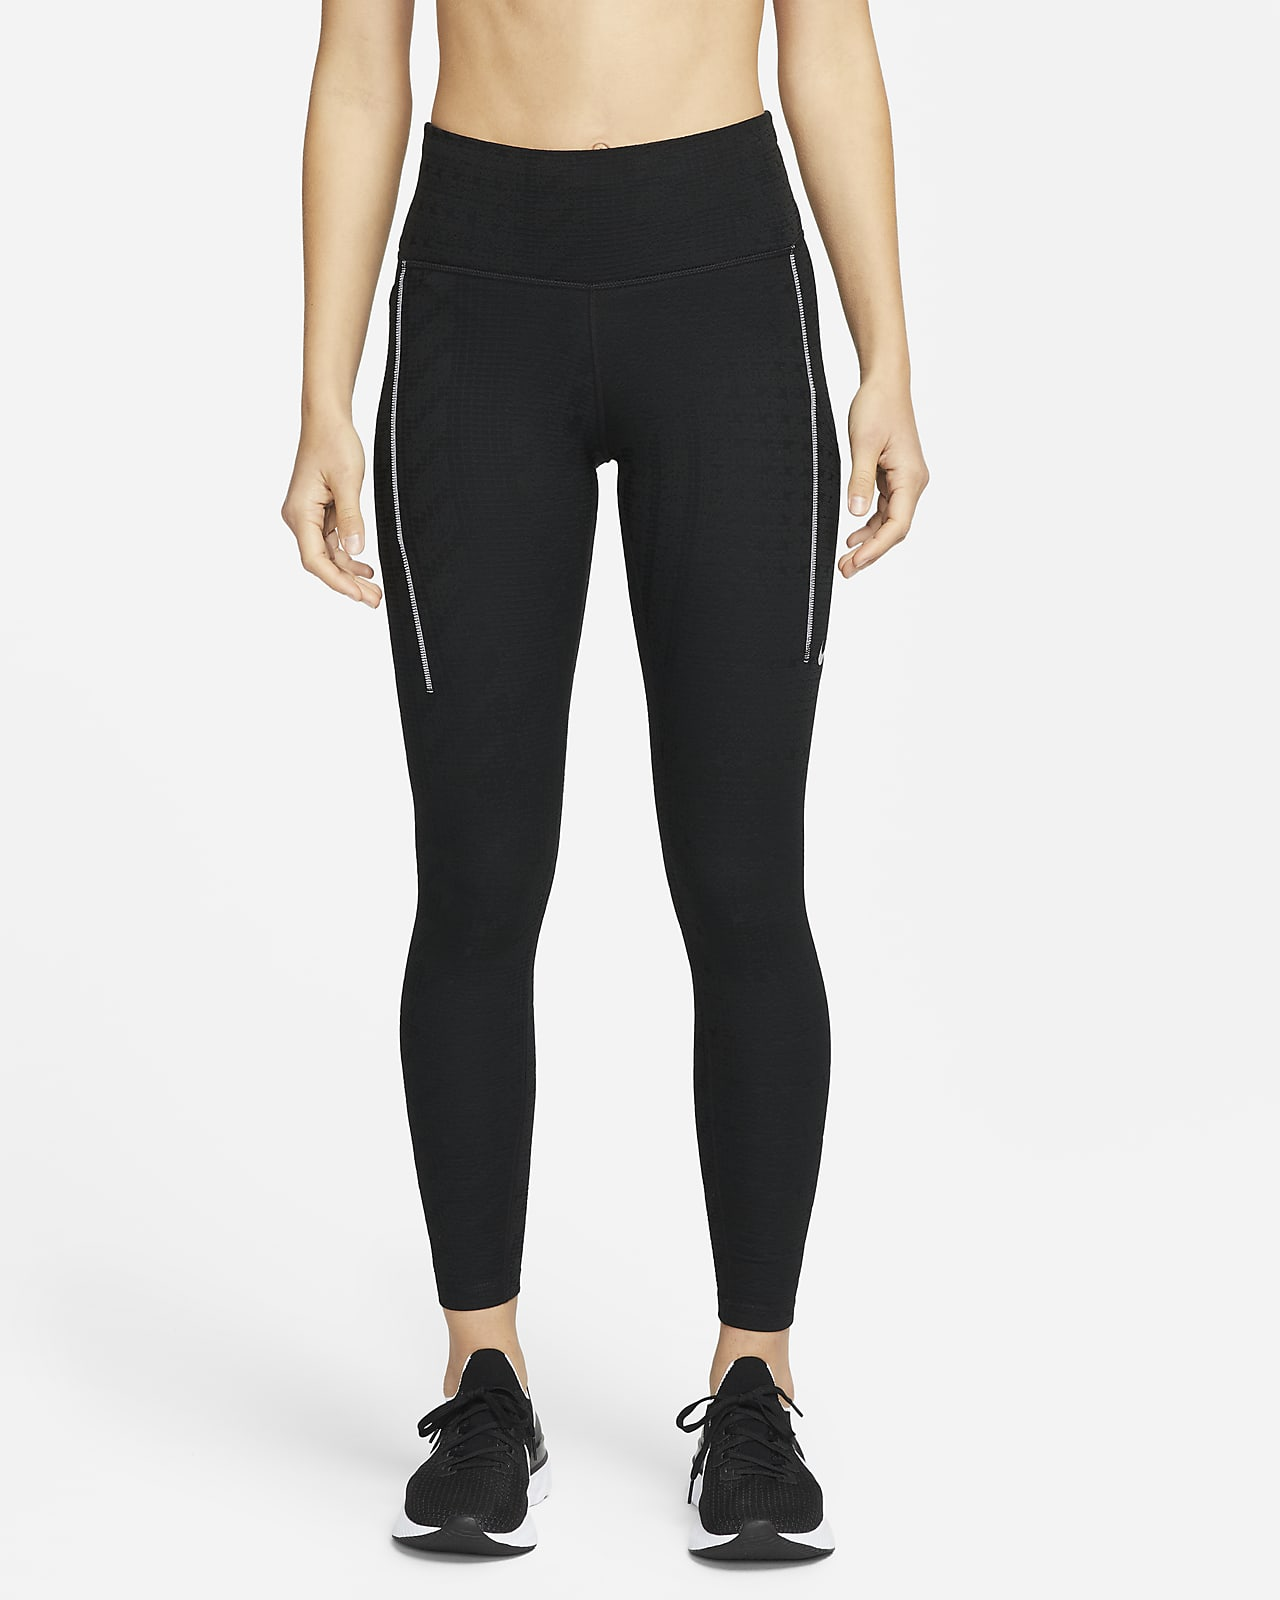 Nike Therma-FIT ADV Epic Luxe Women's Running Leggings